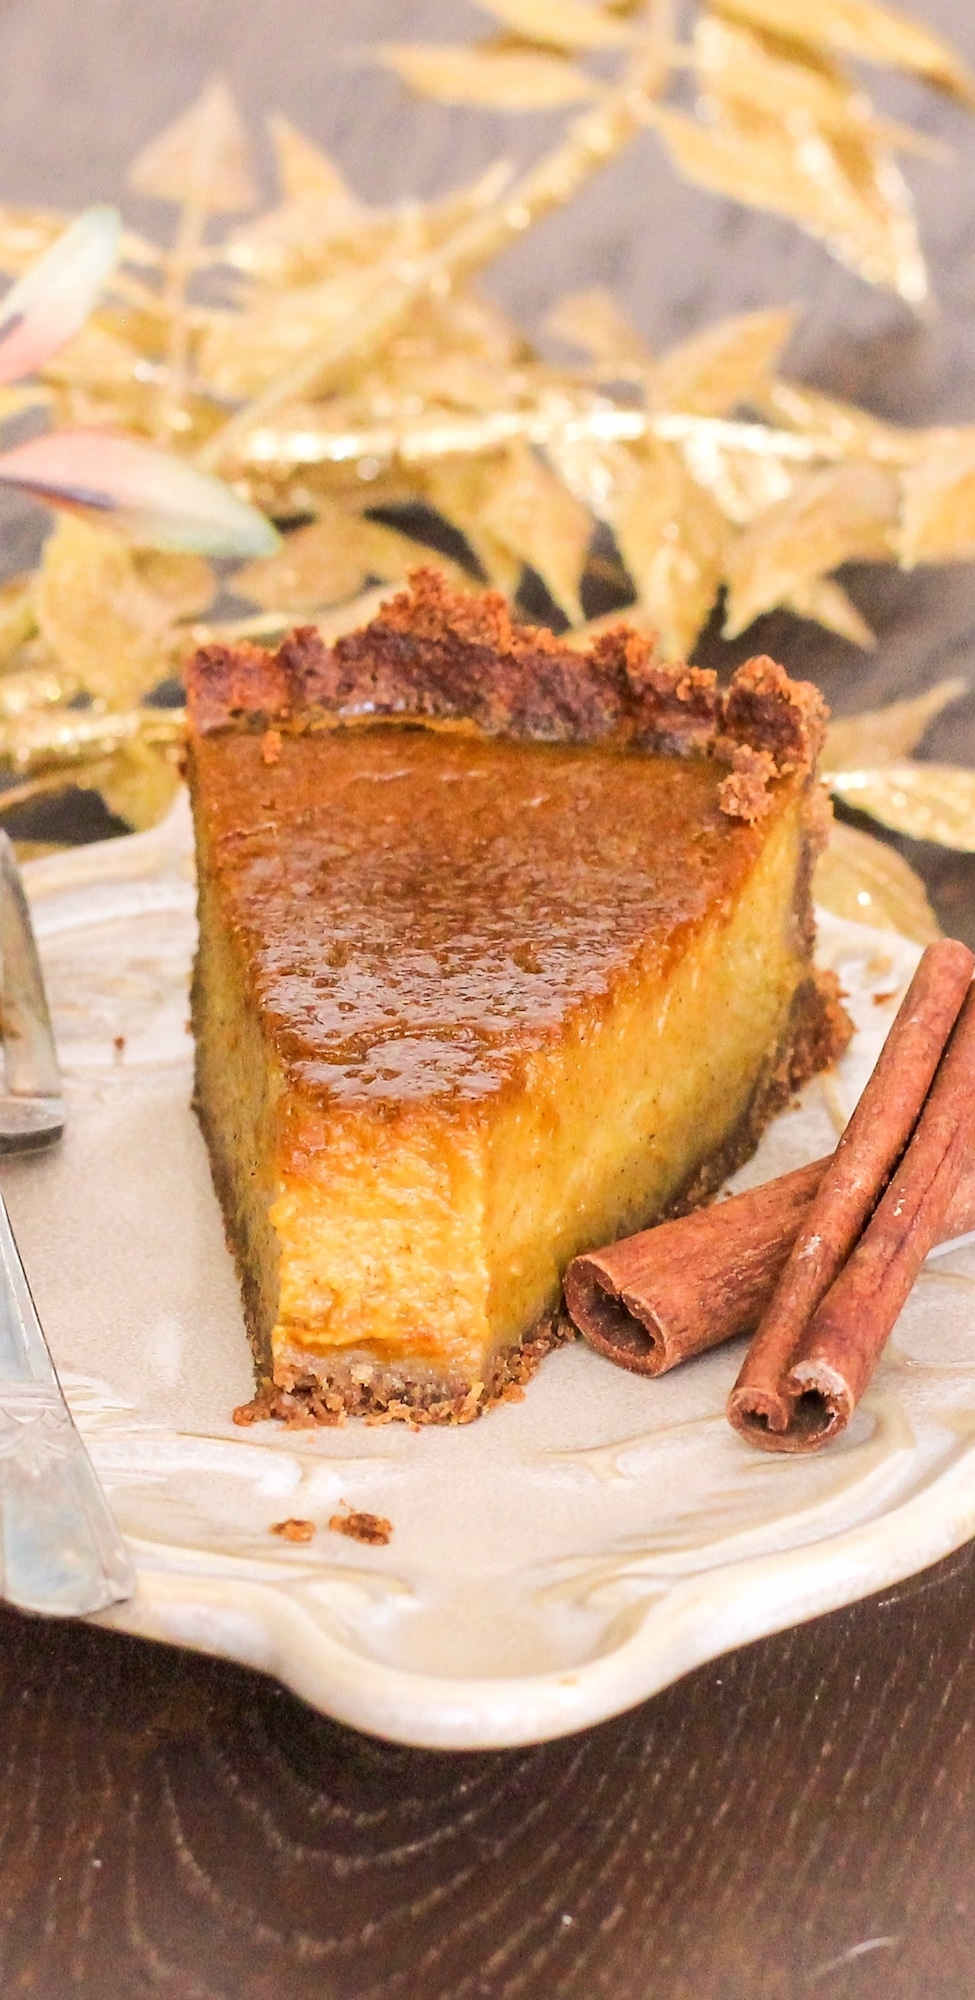 [14 healthy pie recipes to celebrate Pi Day] Healthy Pumpkin Pie from the Naughty or Nice Cookbook: The ULTIMATE Healthy Dessert Cookbook!